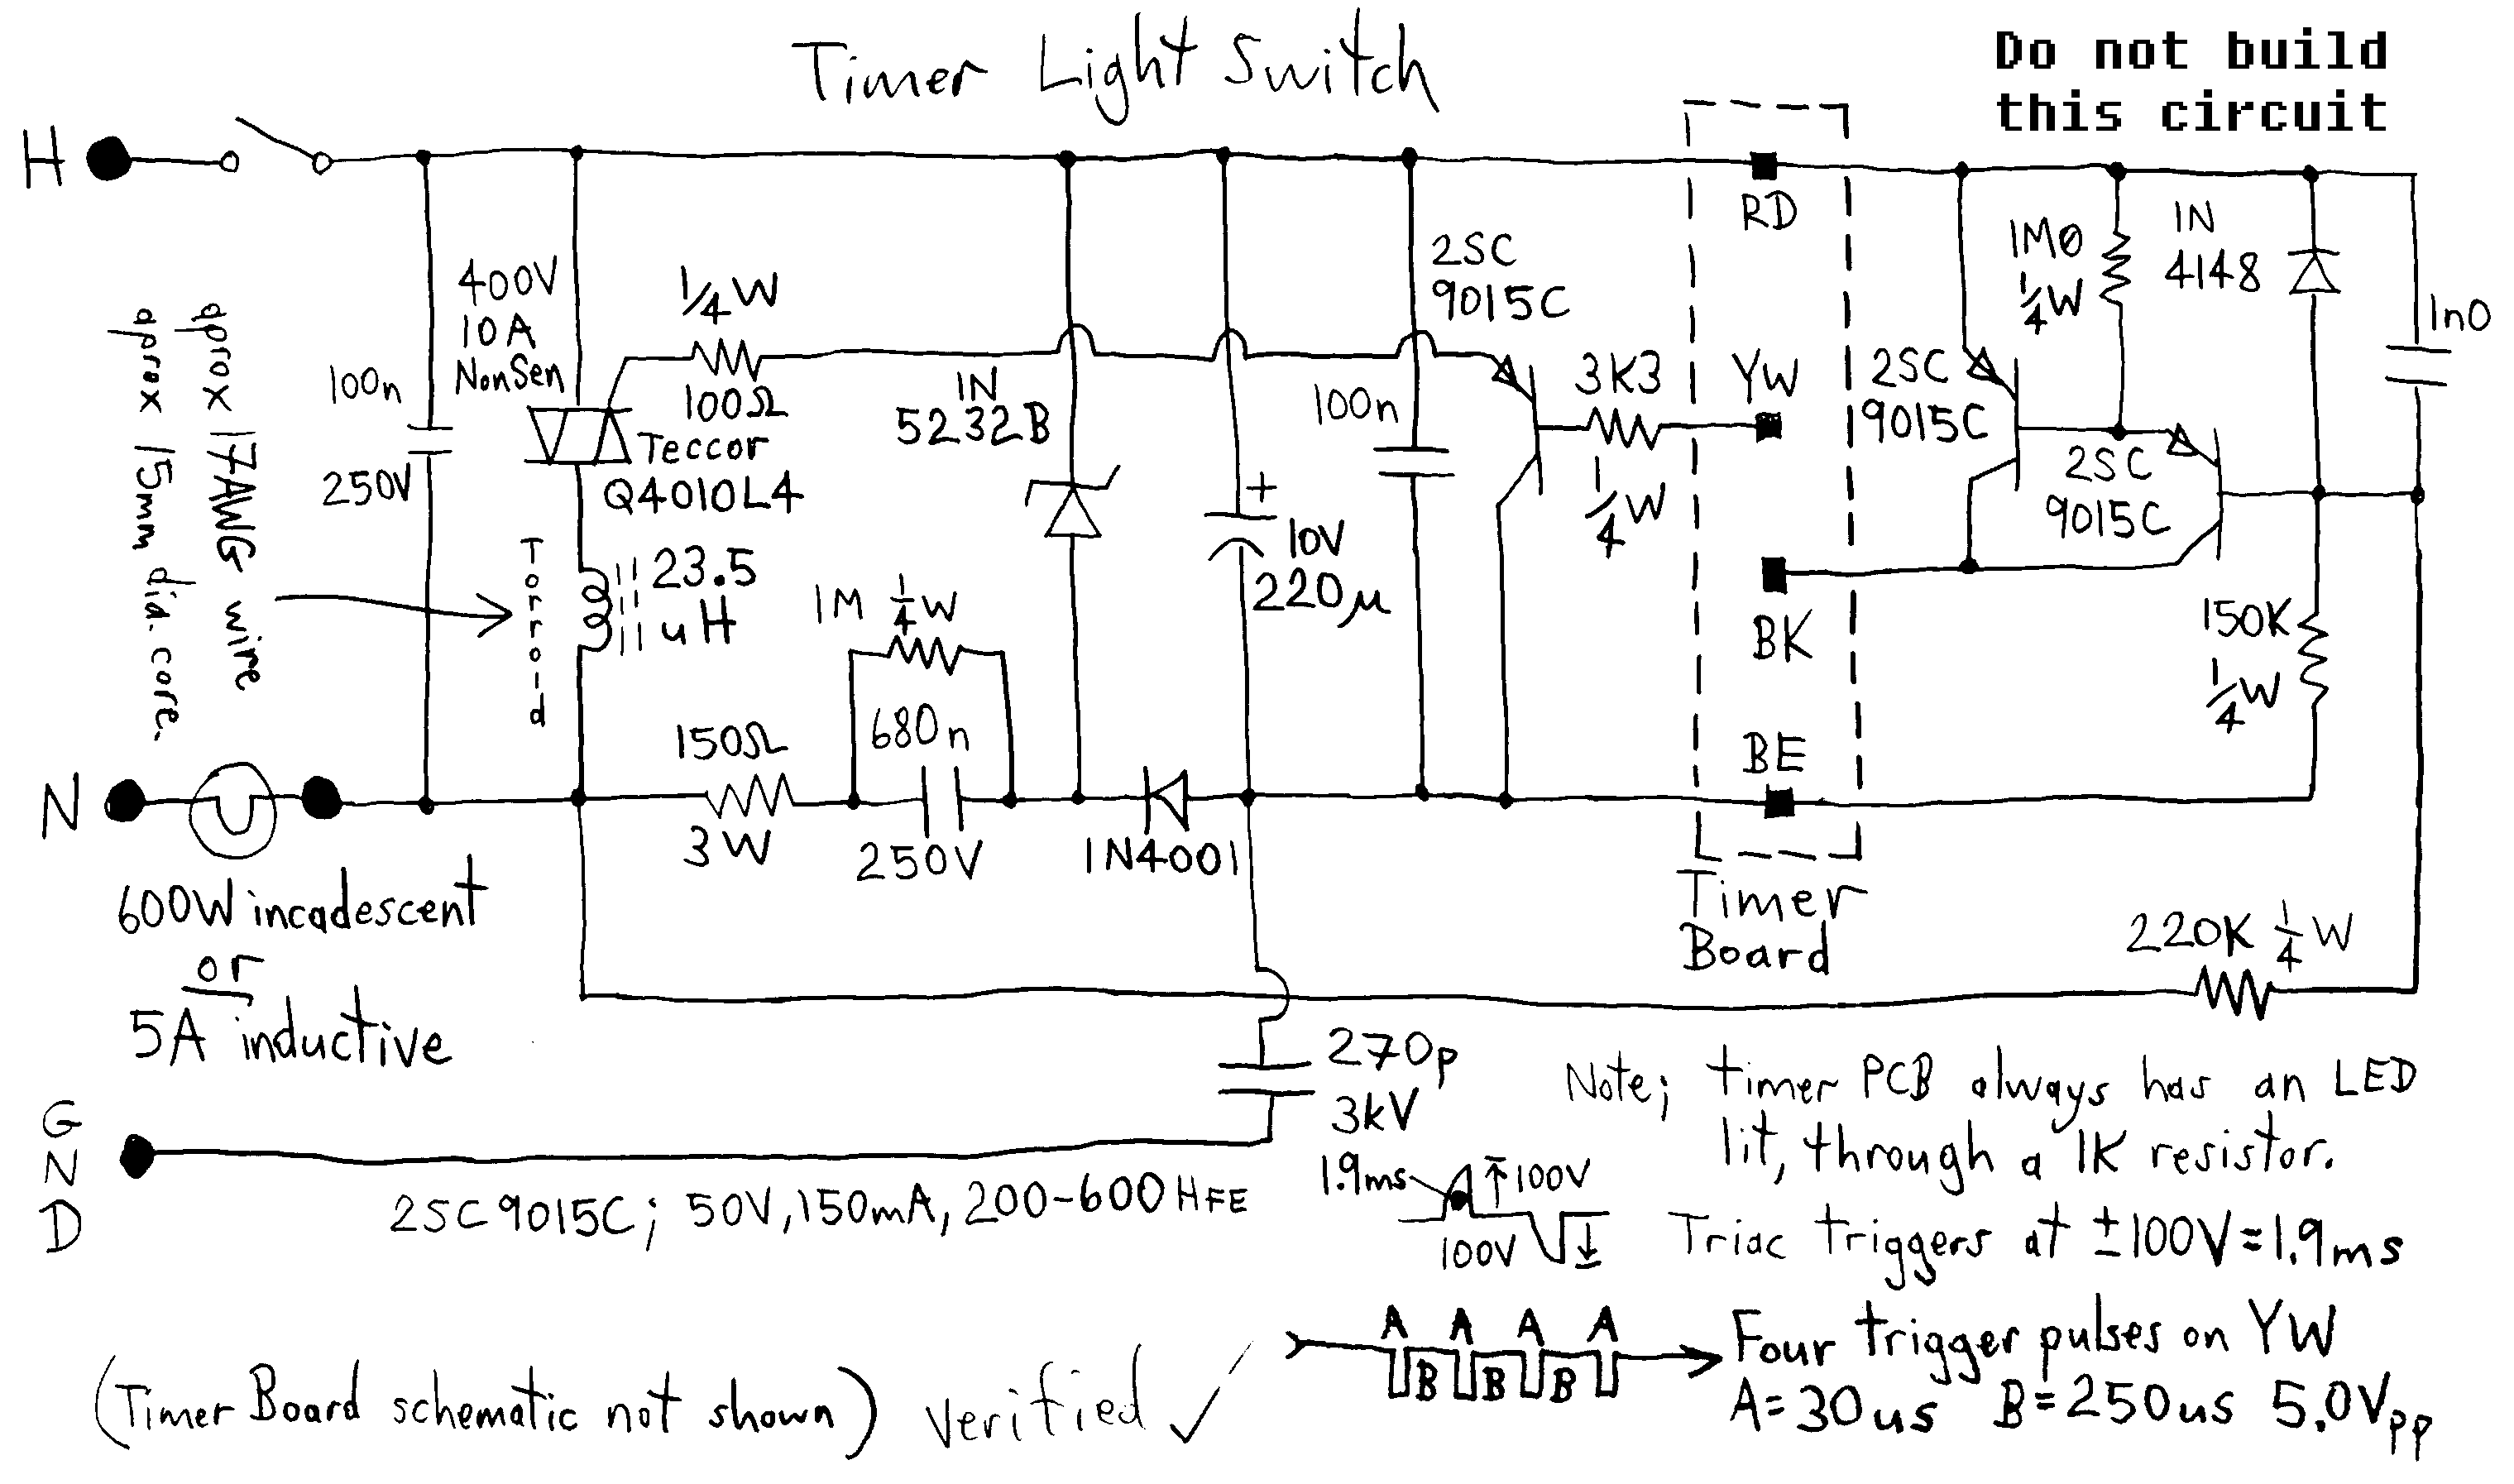 timer light switch wiring diagram, Wiring diagram